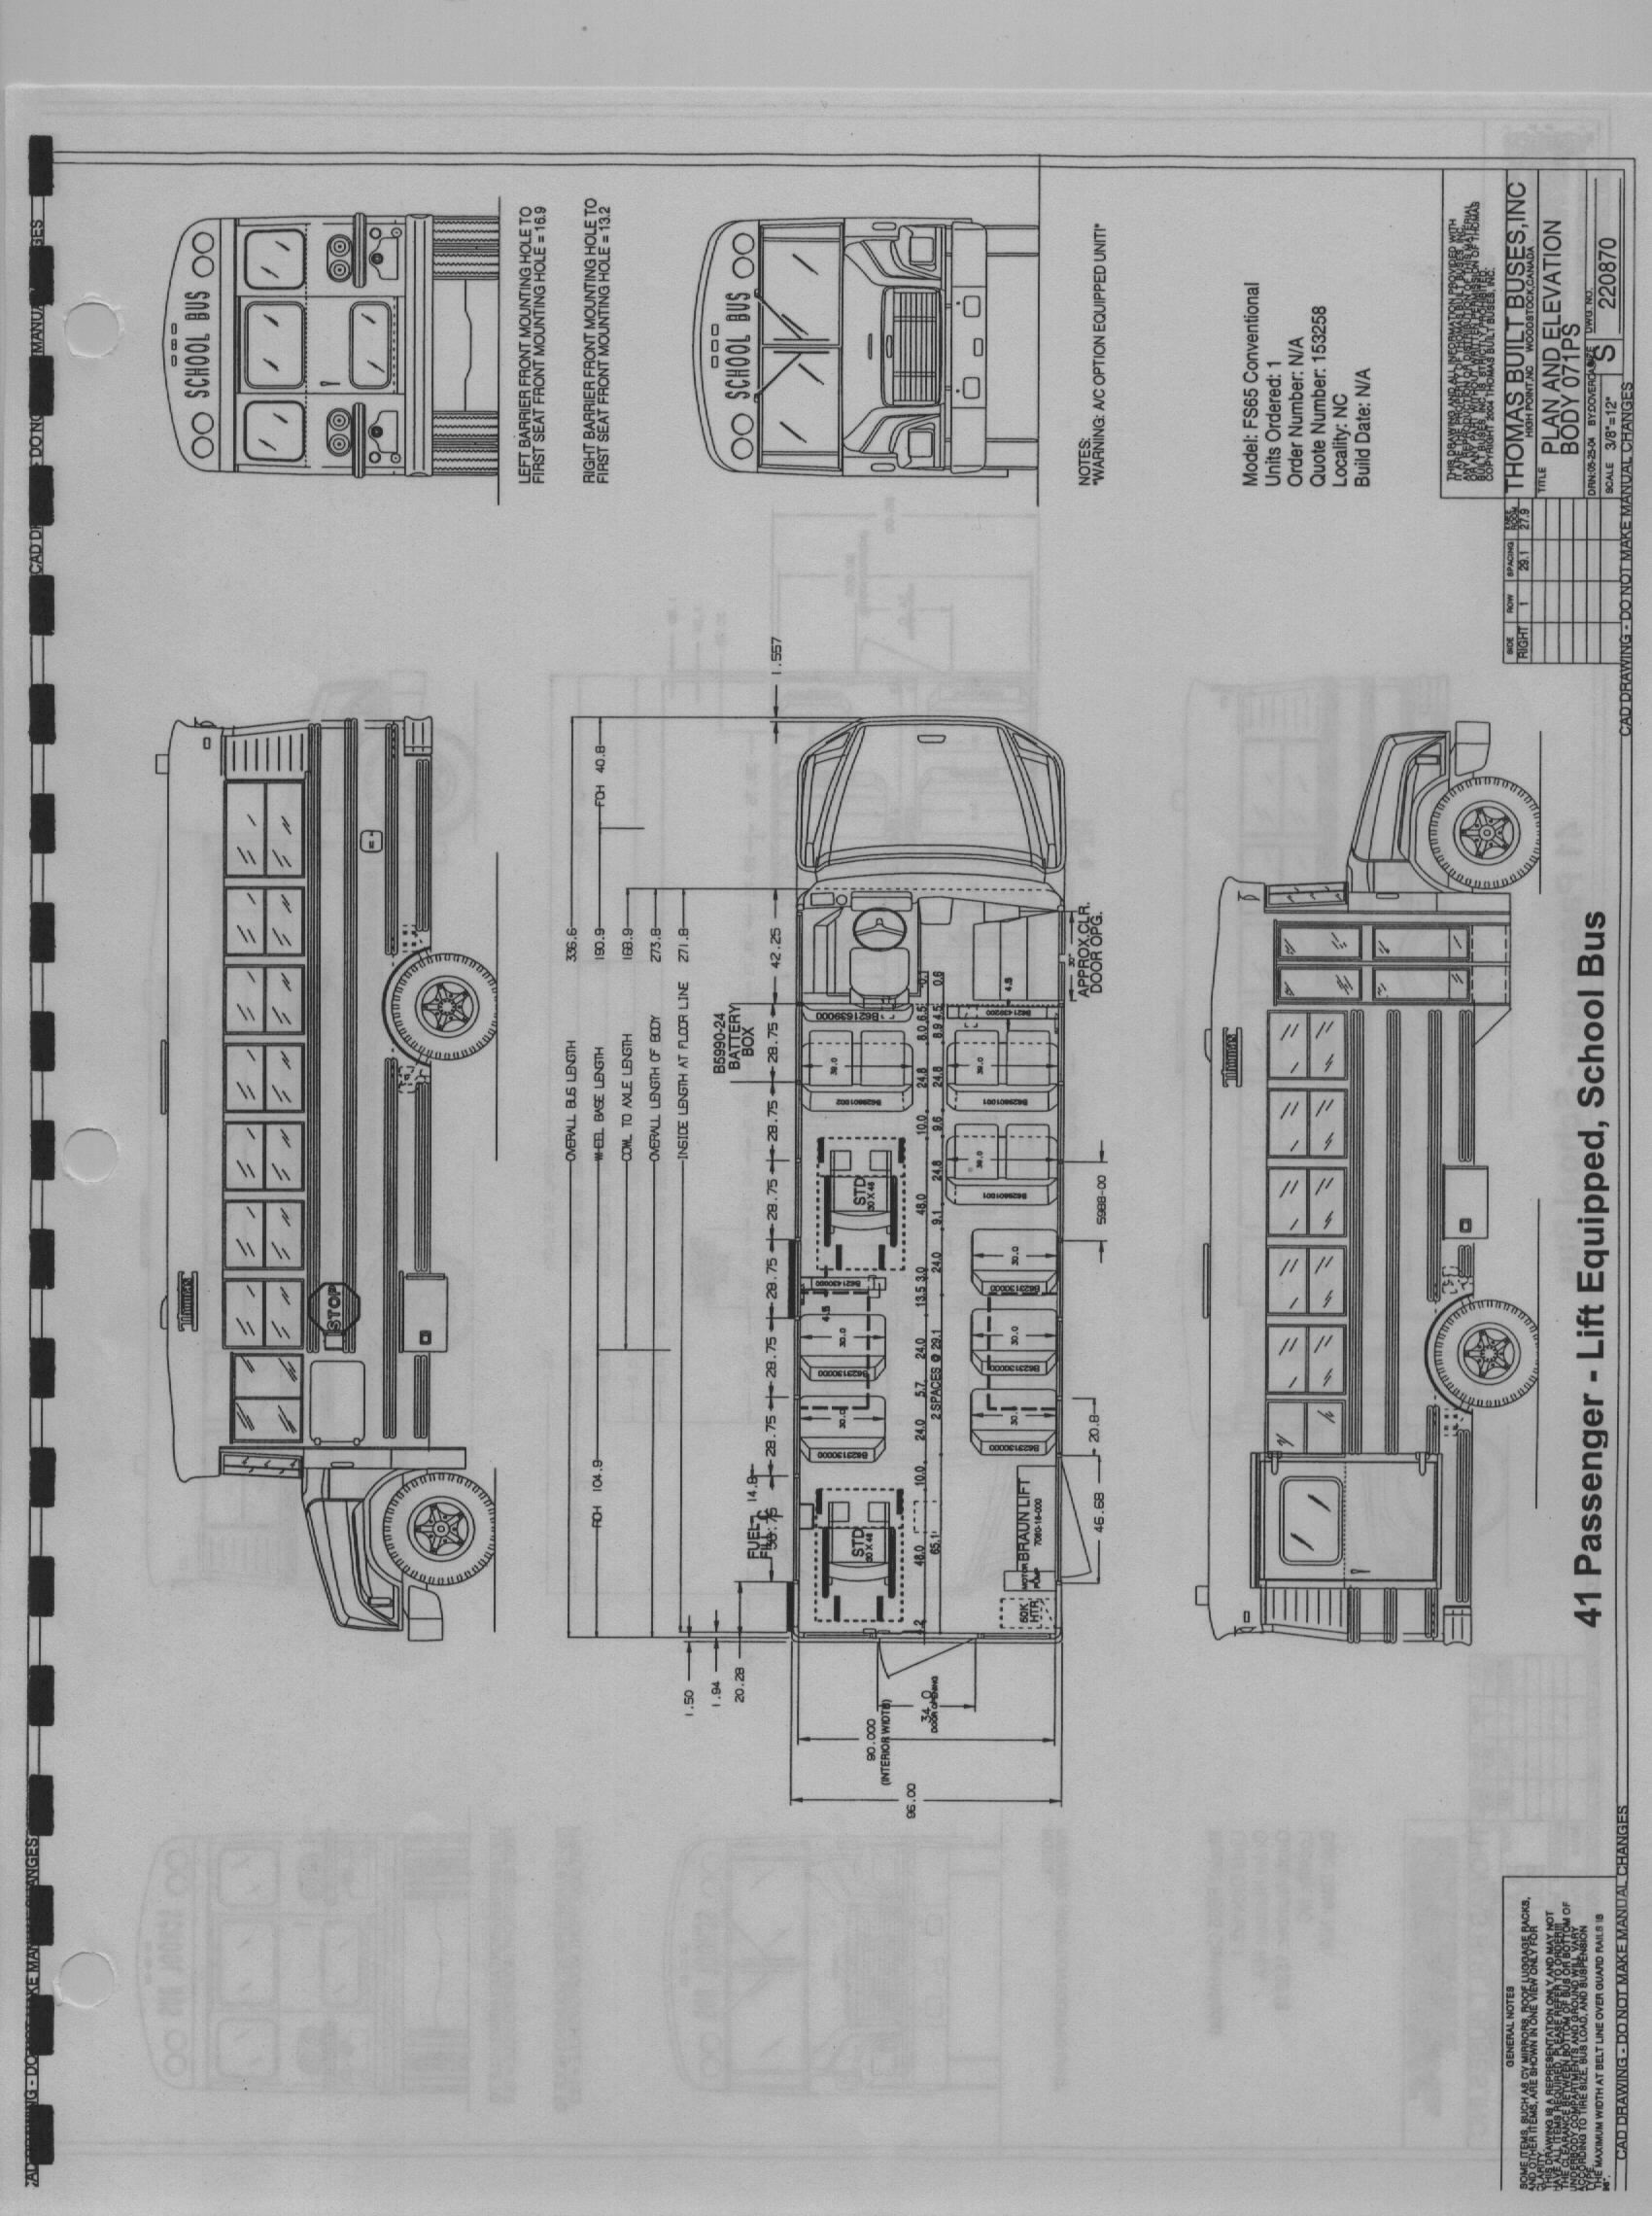 Freightliner Wiring Fuse Box Diagram Parts Wiring